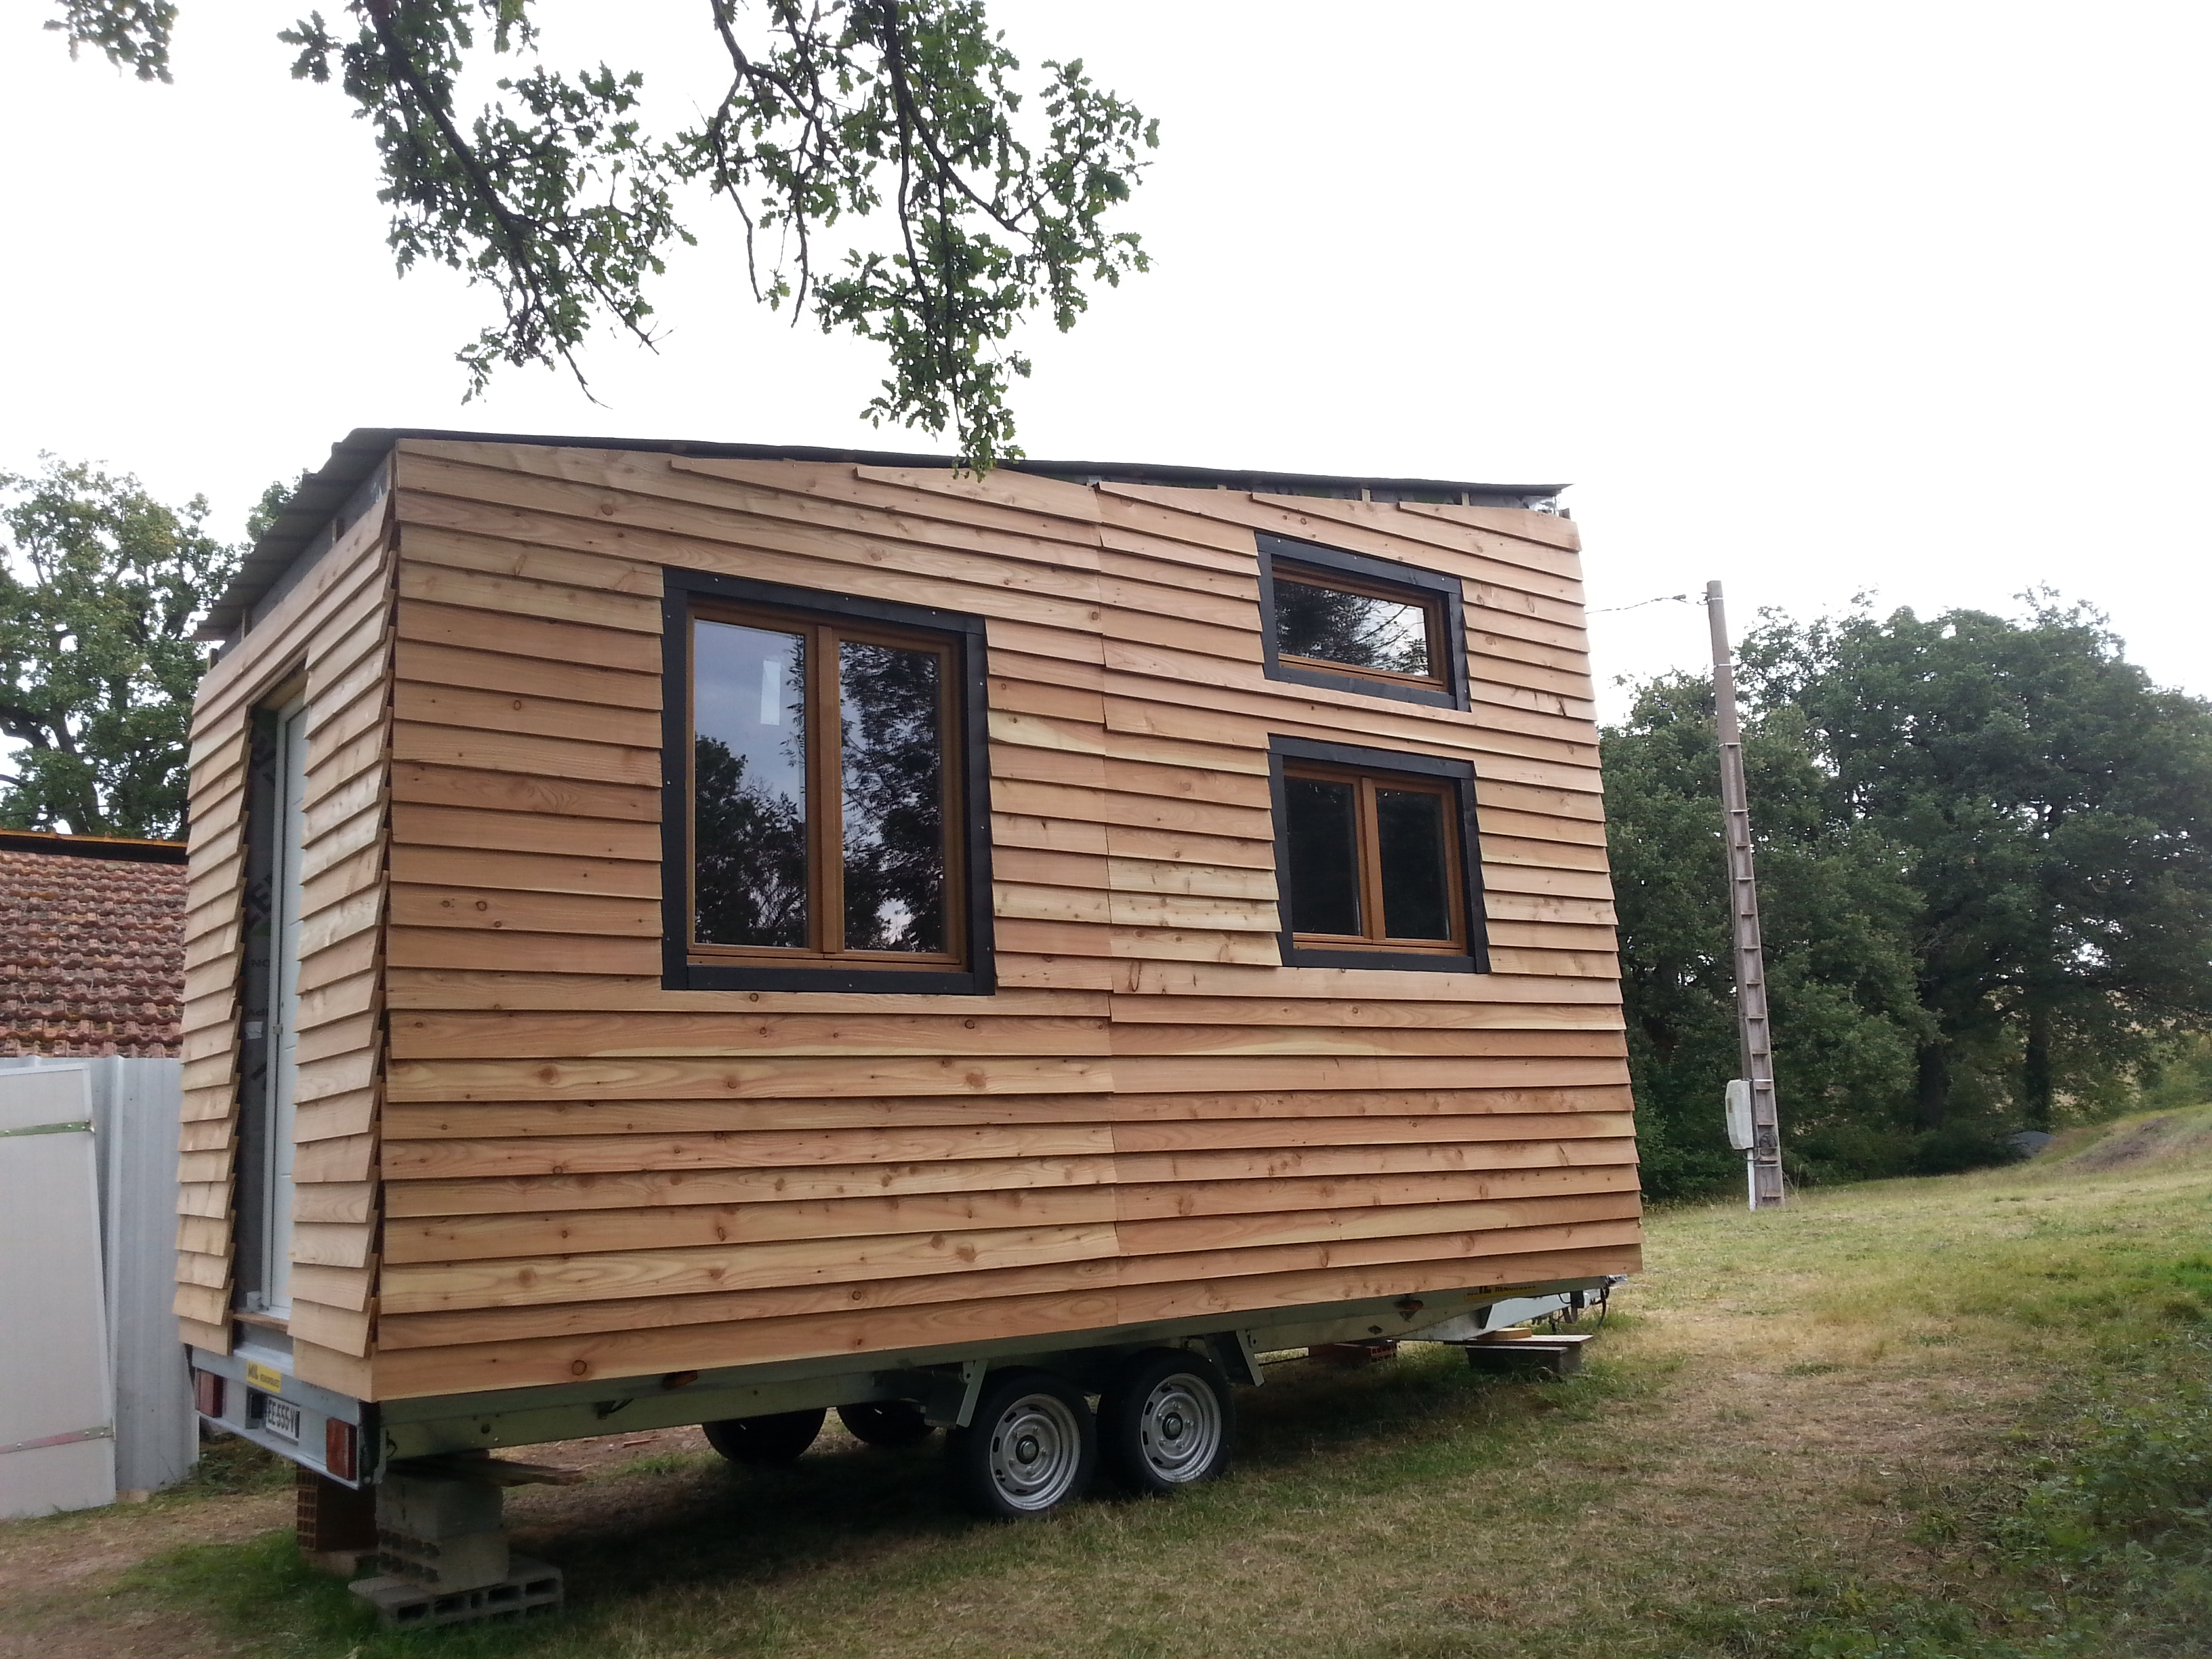 il construit sa propre maison sur roues une tiny house ma tiny house. Black Bedroom Furniture Sets. Home Design Ideas